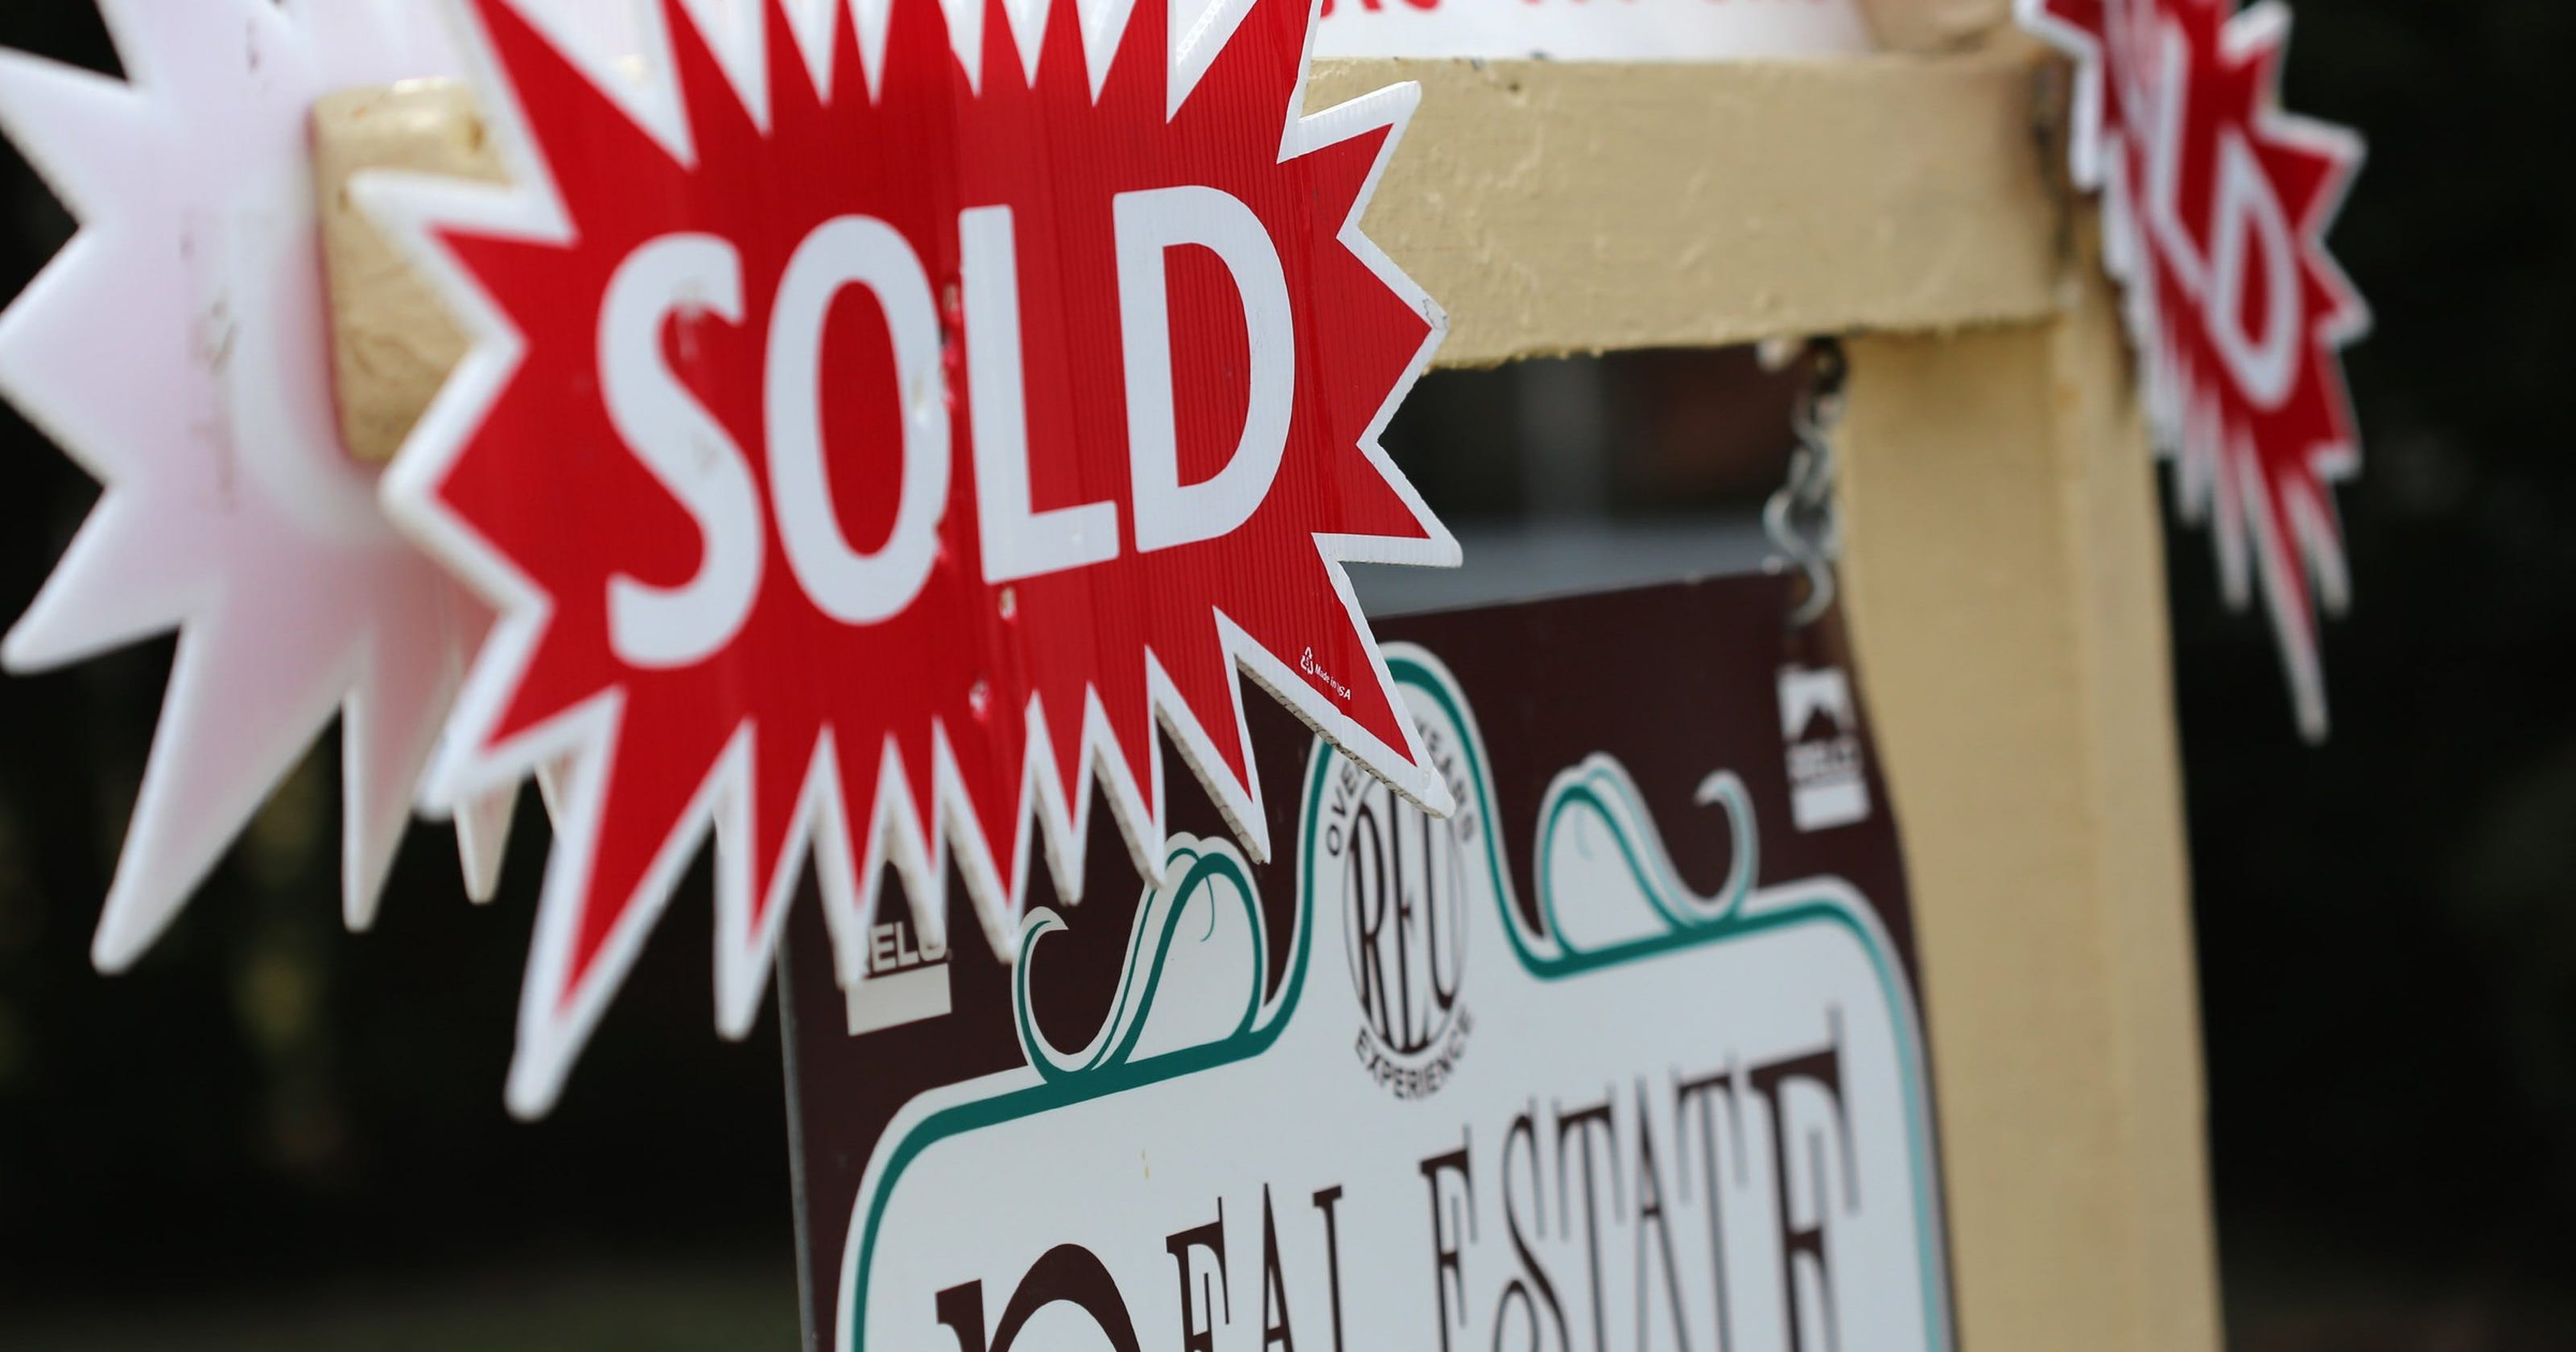 Oakland County home prices soar as buyers outbid each other